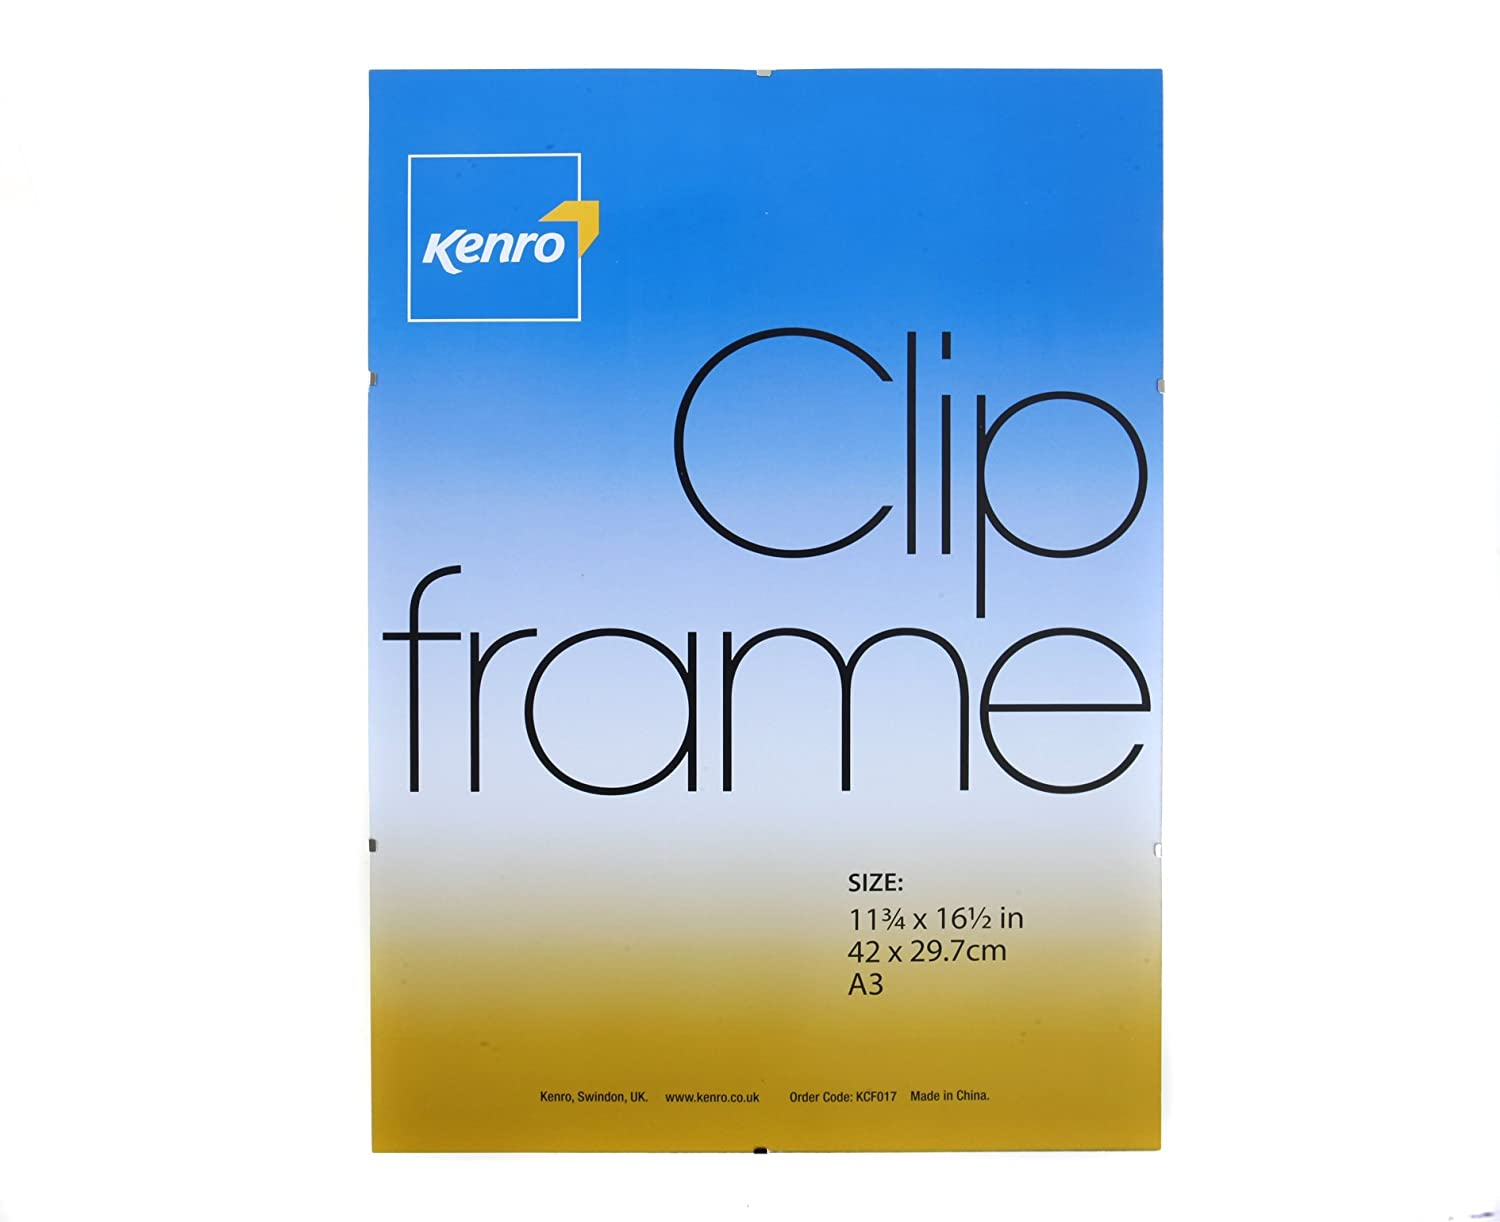 Amazon.com: Kenro Clip Frame A3: Office Products